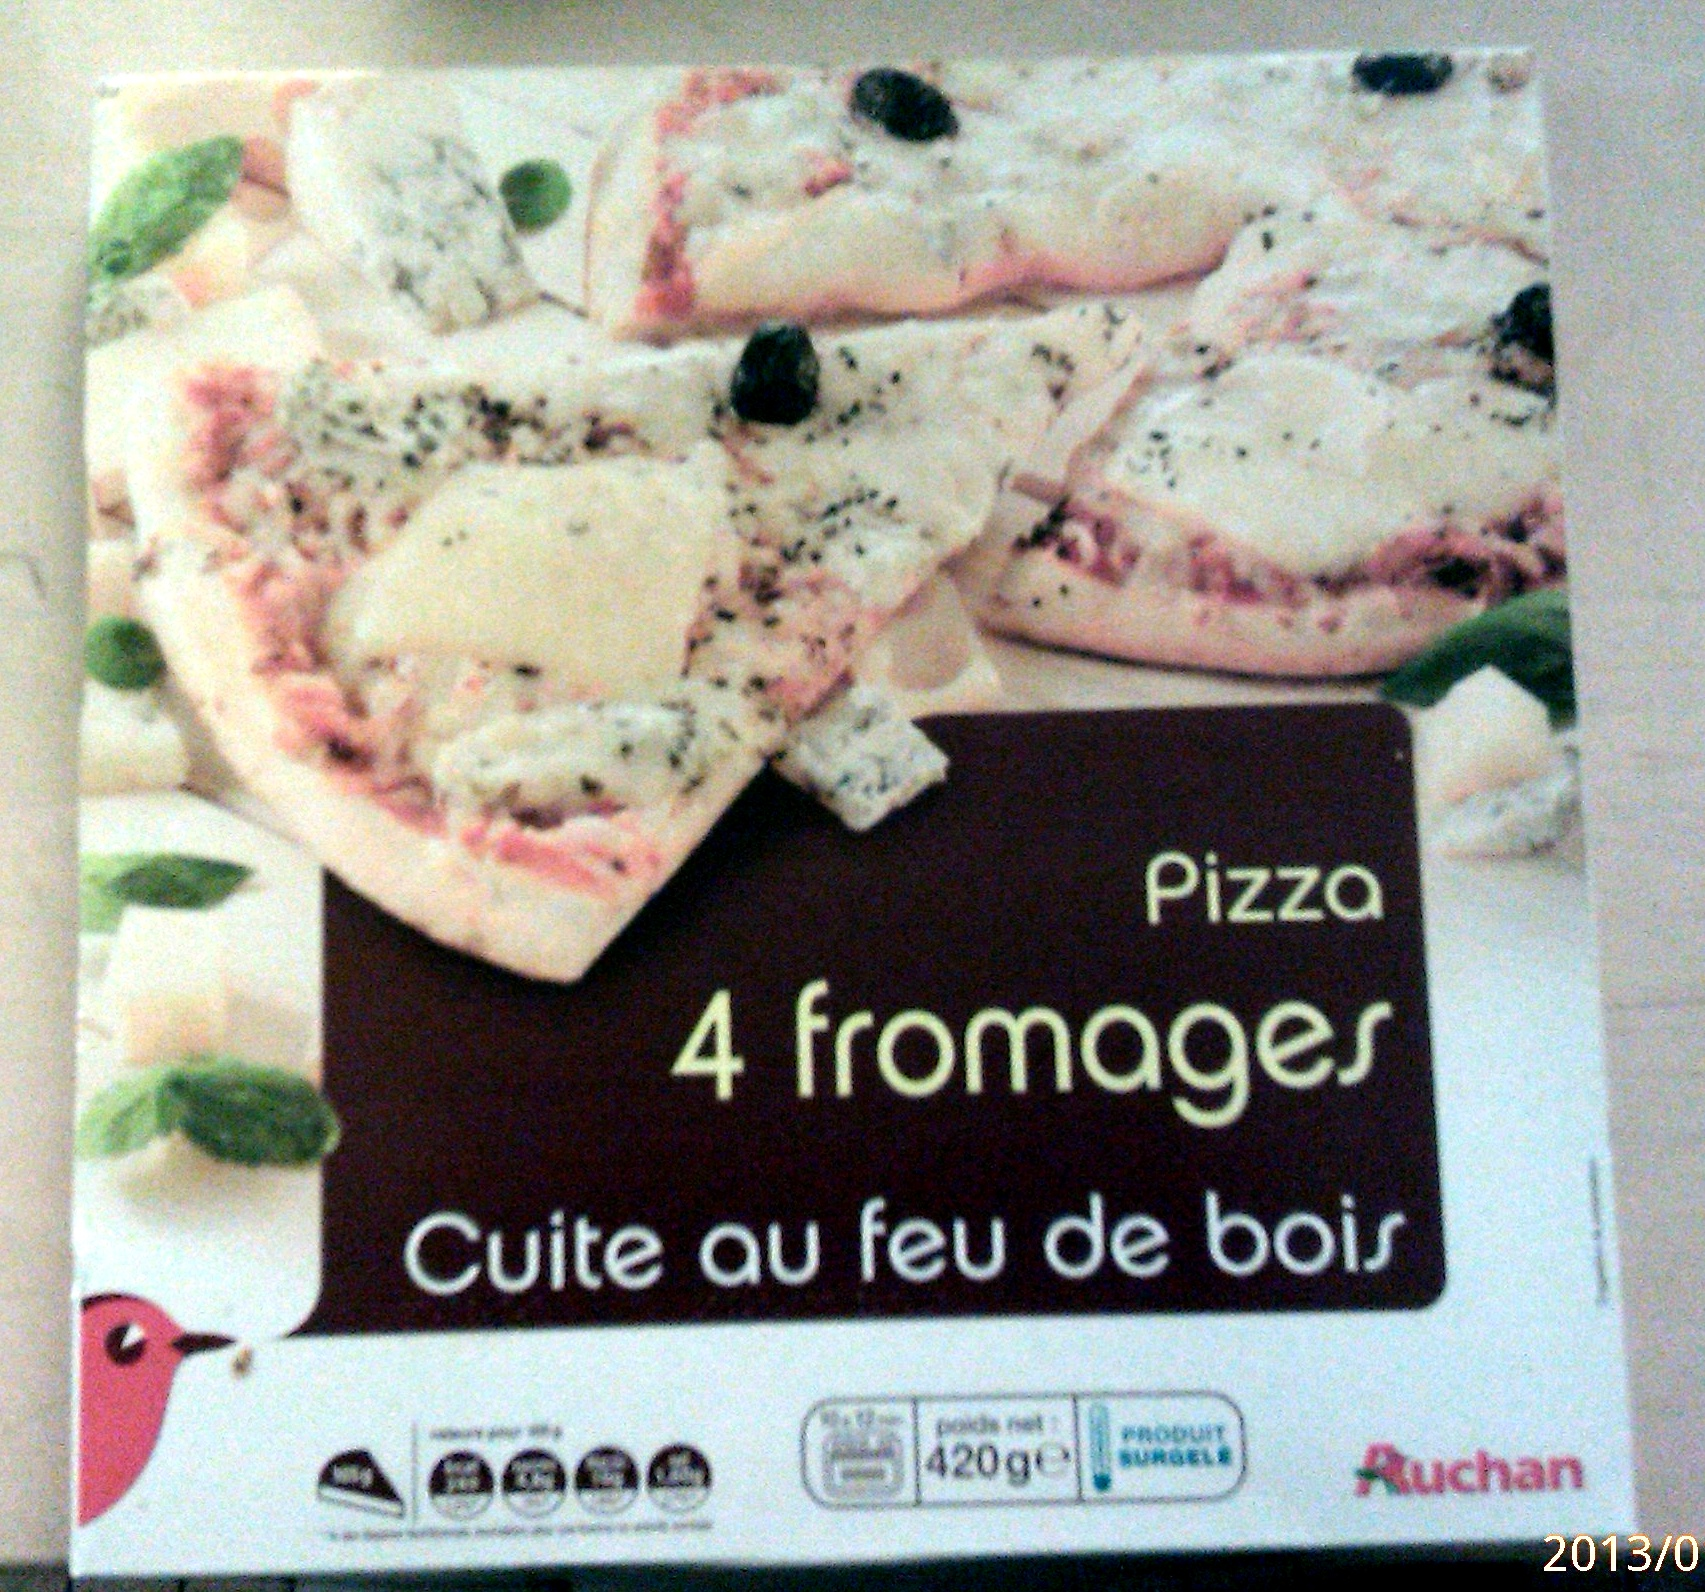 pizza 4 fromage cuite au feu de bois auchan 420 g. Black Bedroom Furniture Sets. Home Design Ideas